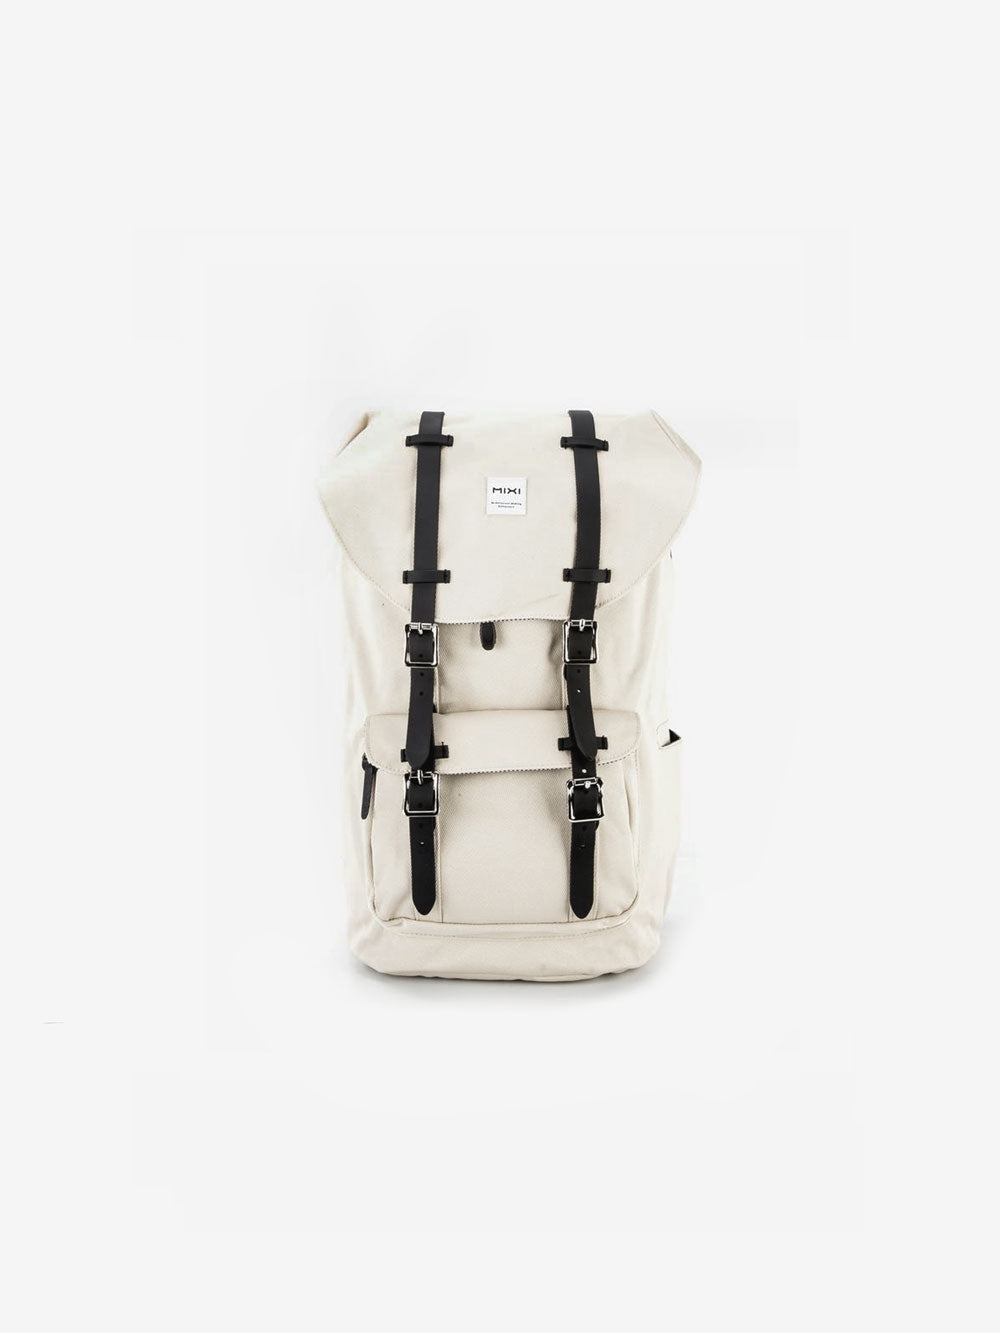 The Knapsack in Creme